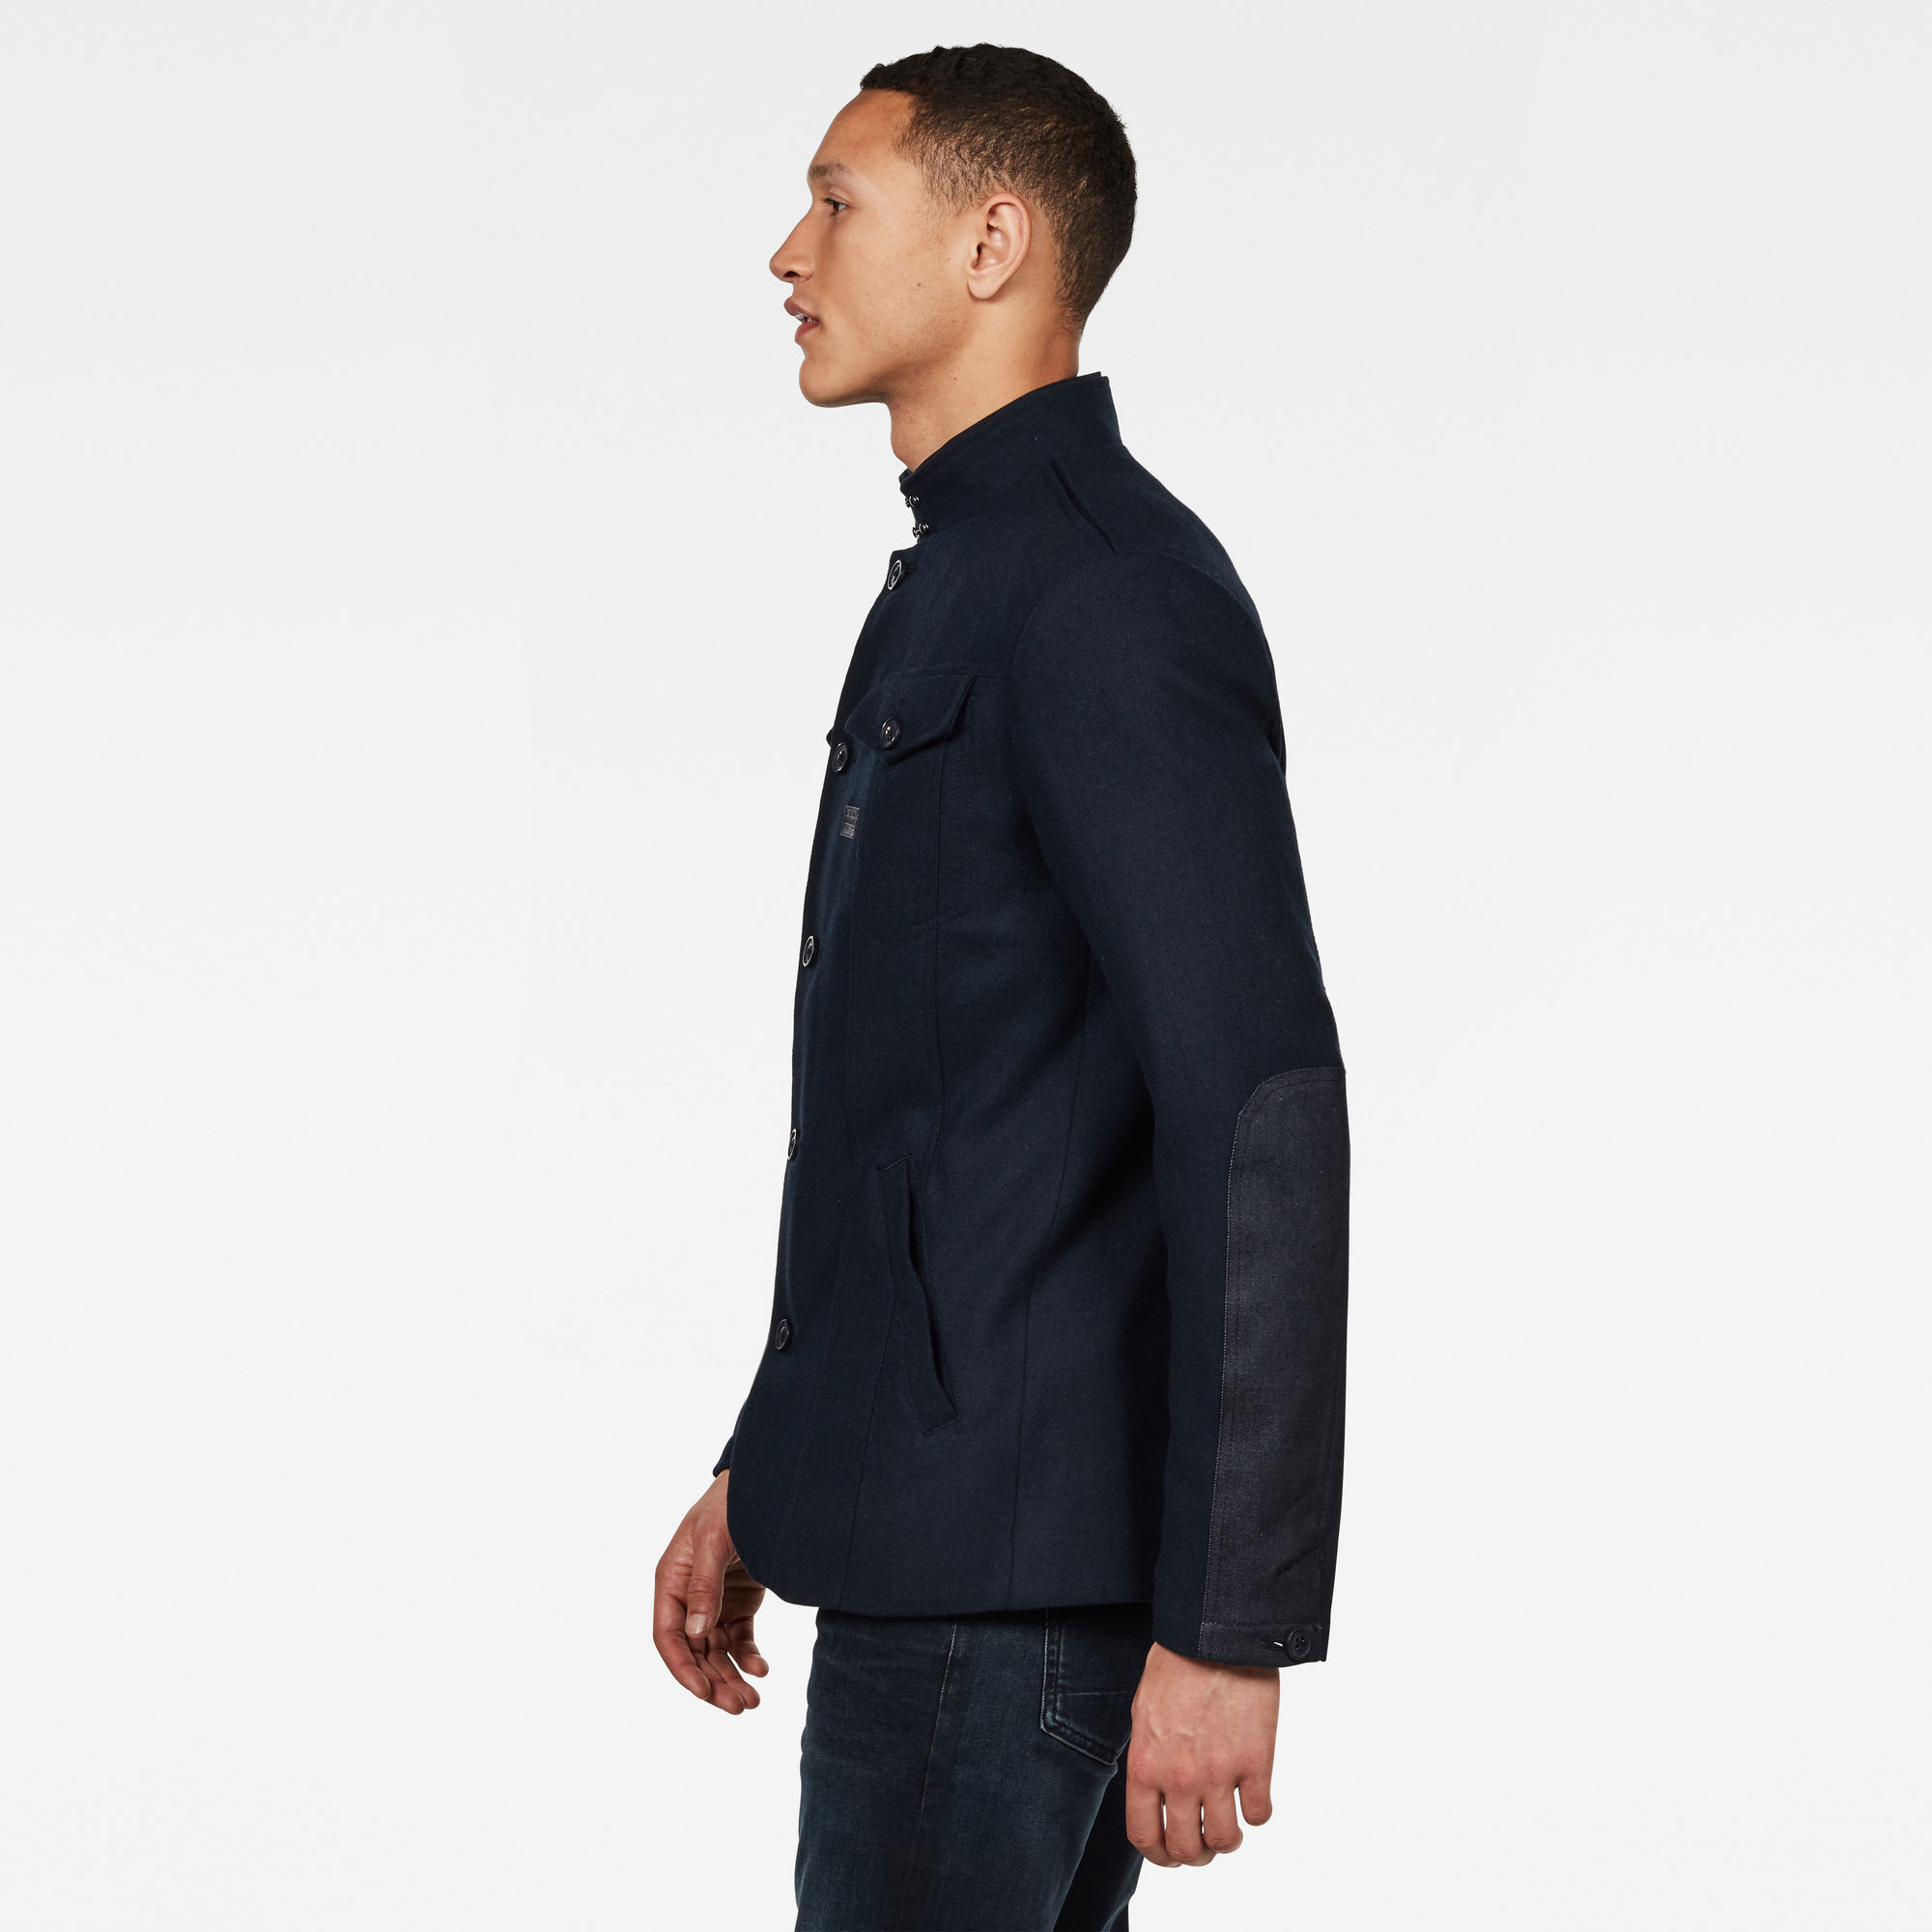 G-Star RAW Cormac Blazer